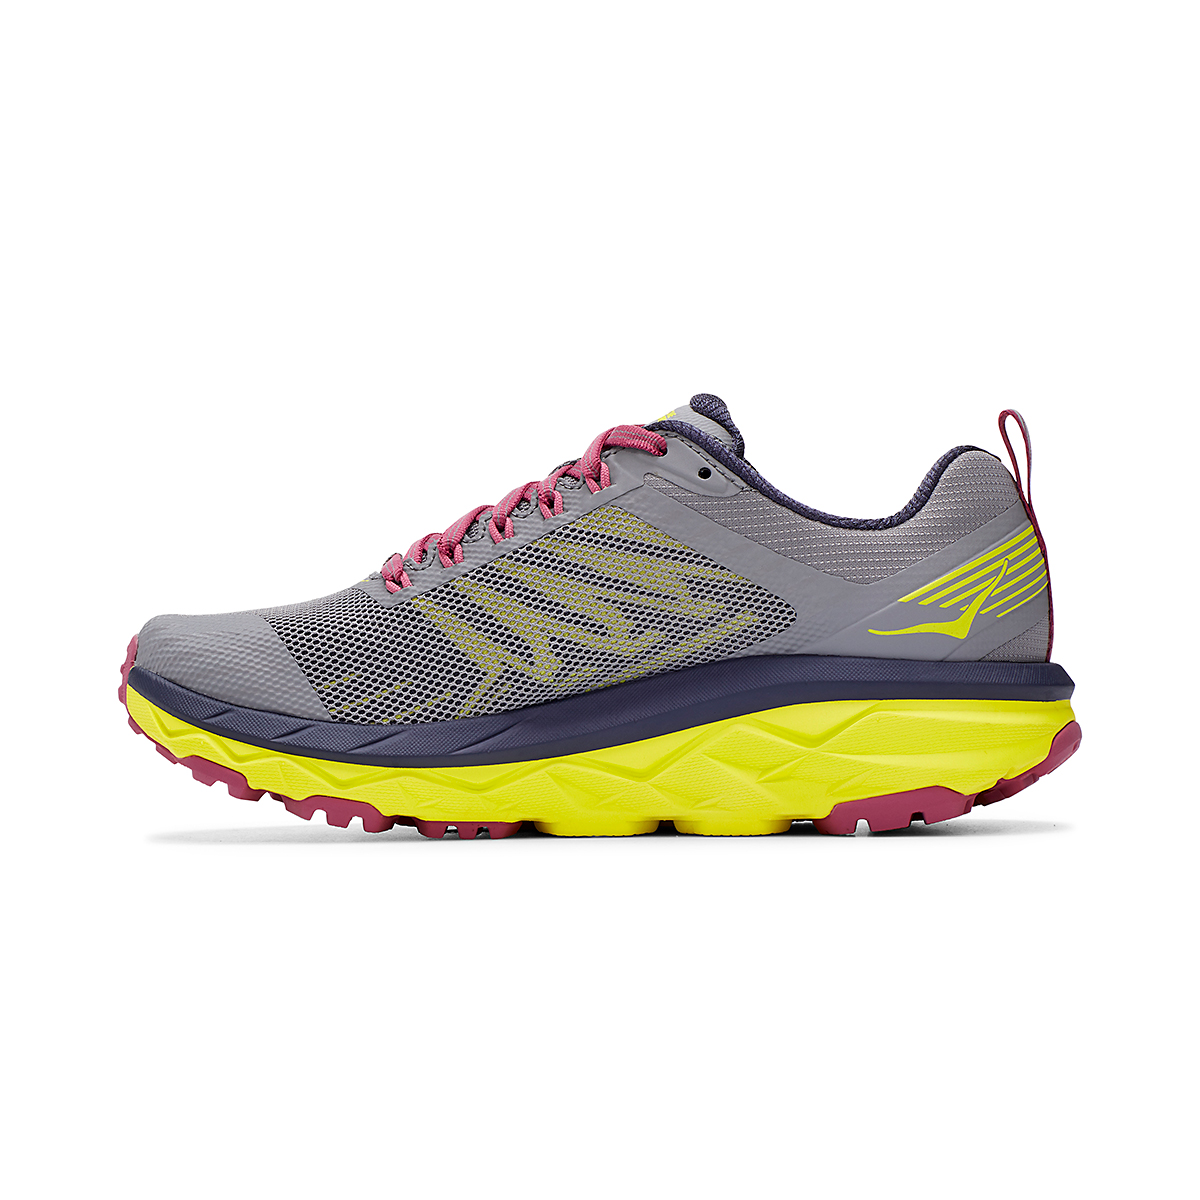 Women's Hoka One One Challenger ATR 5 Trail Running Shoe - Color: Frost Gray/Evening Primrose - Size: 5 - Width: Regular, Frost Gray/Evening Primrose, large, image 2